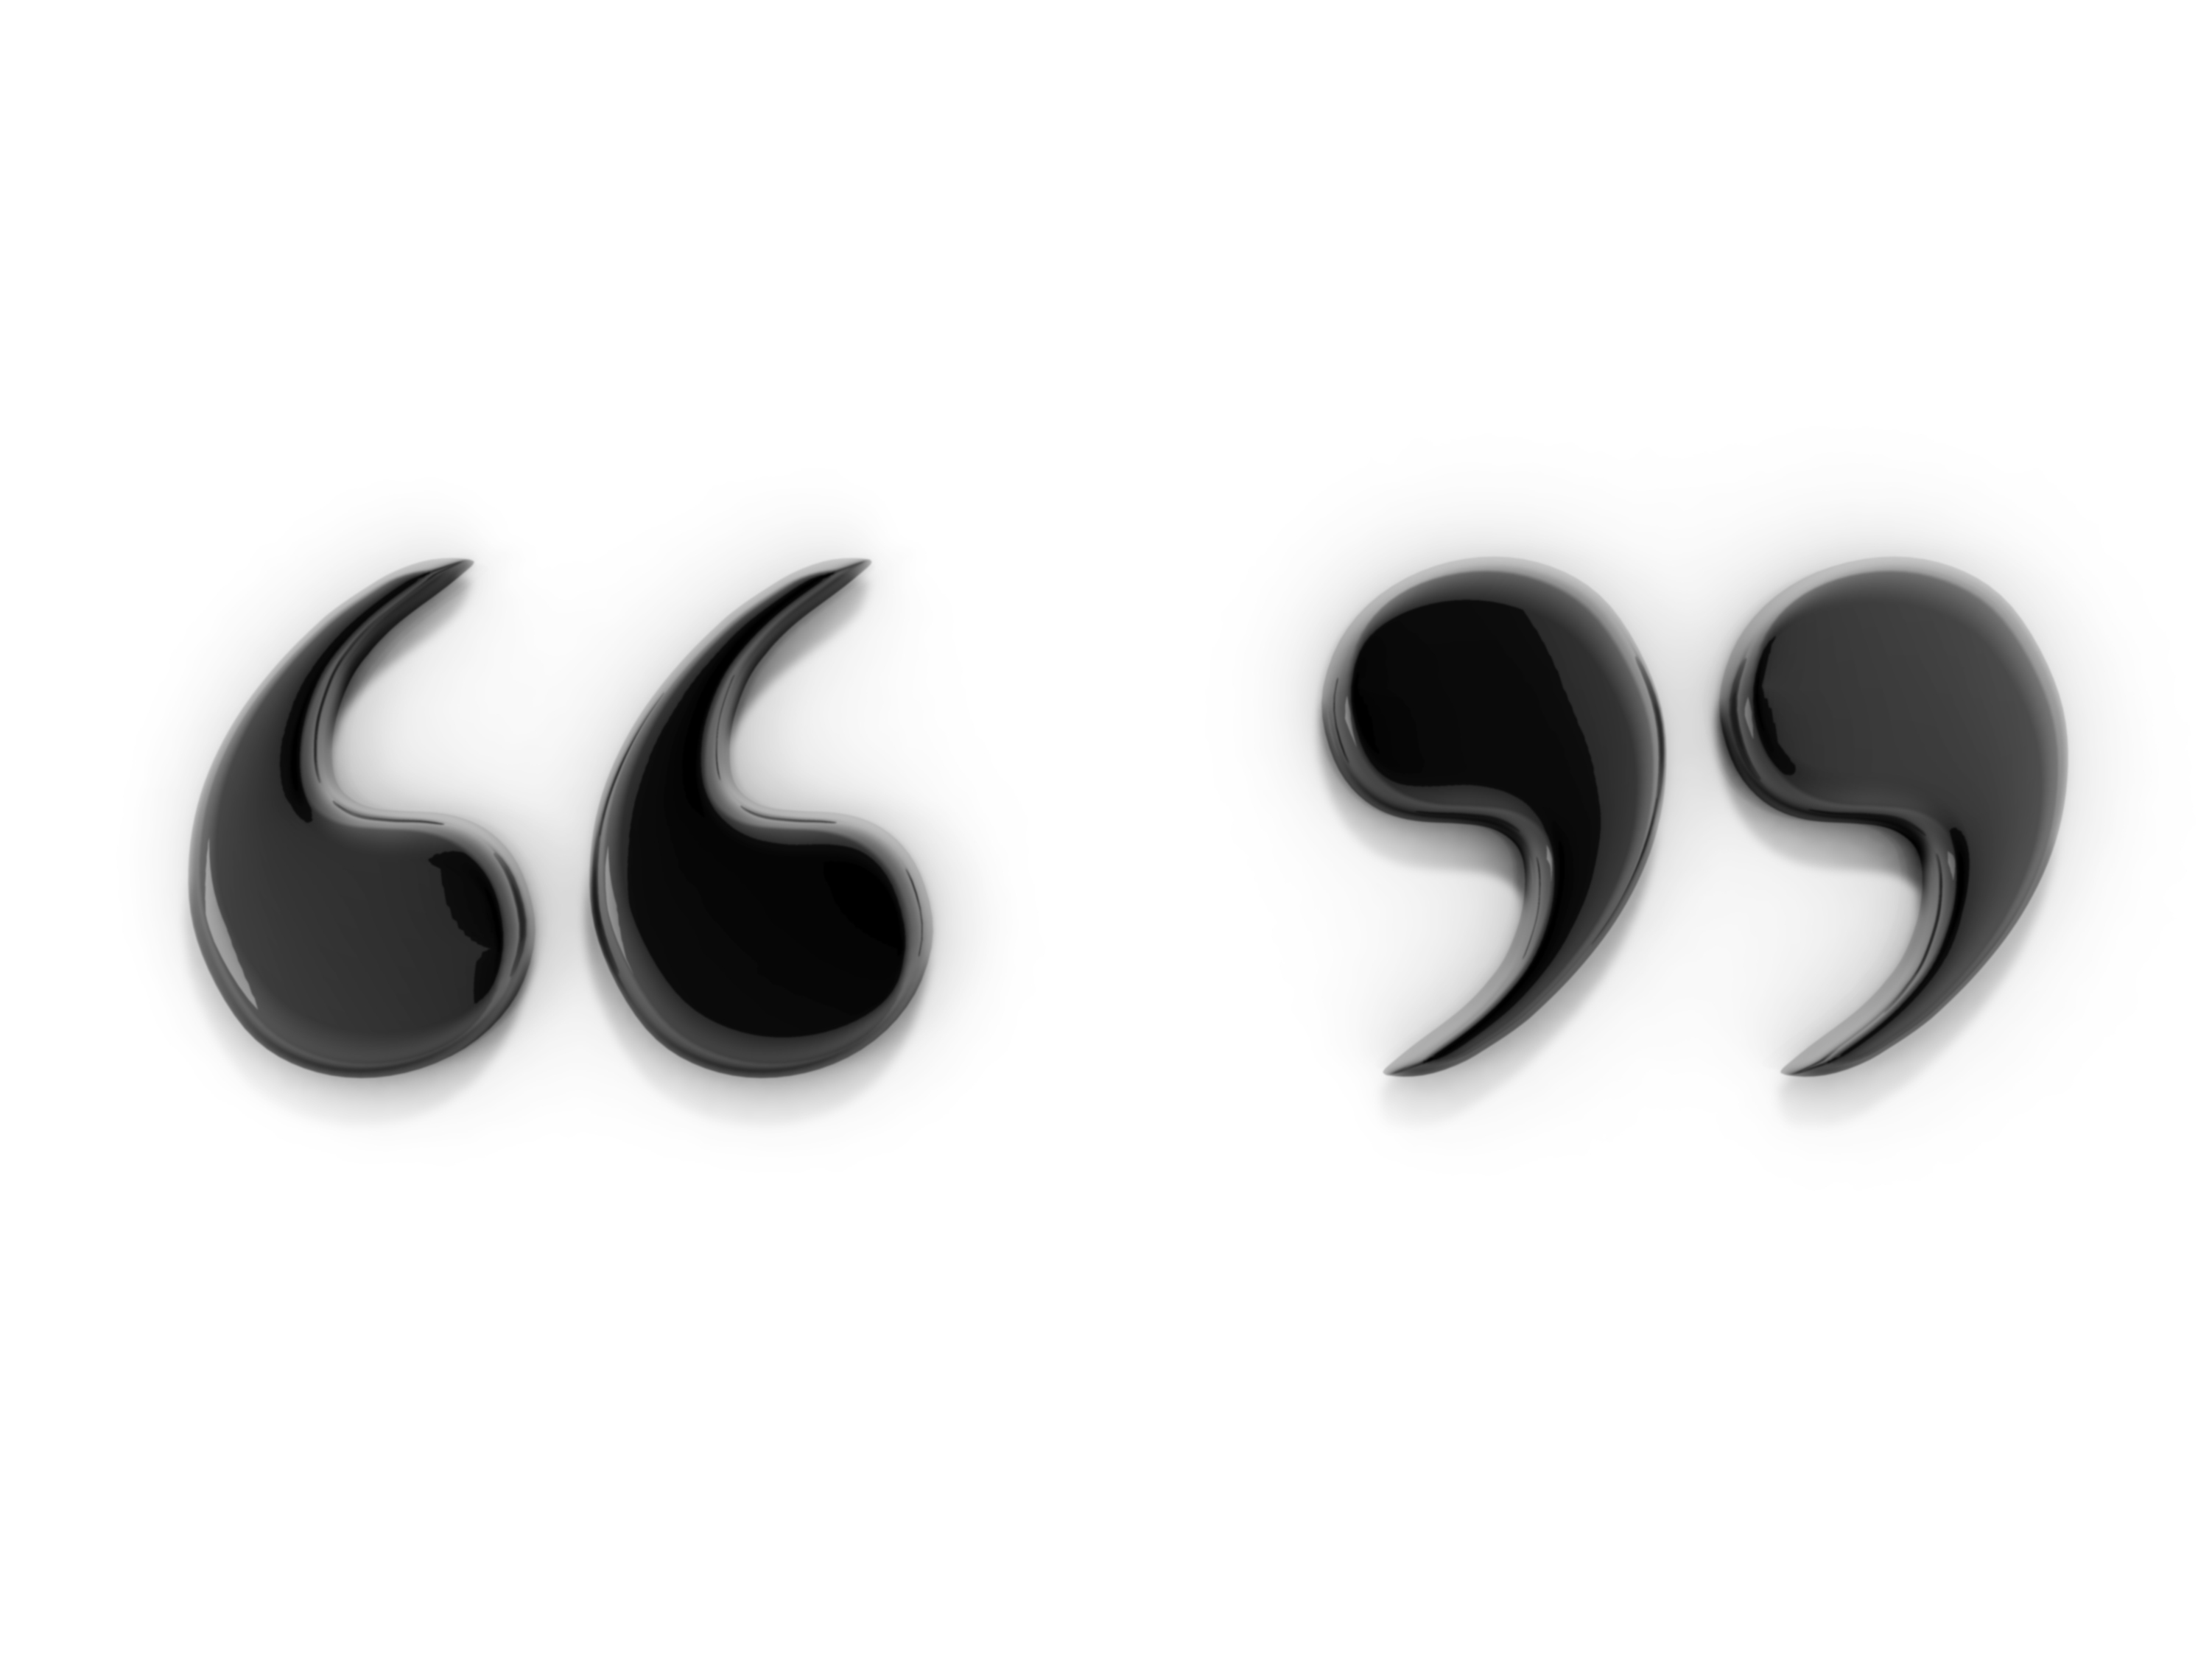 Quotes about Quotation Marks (51 quotes)